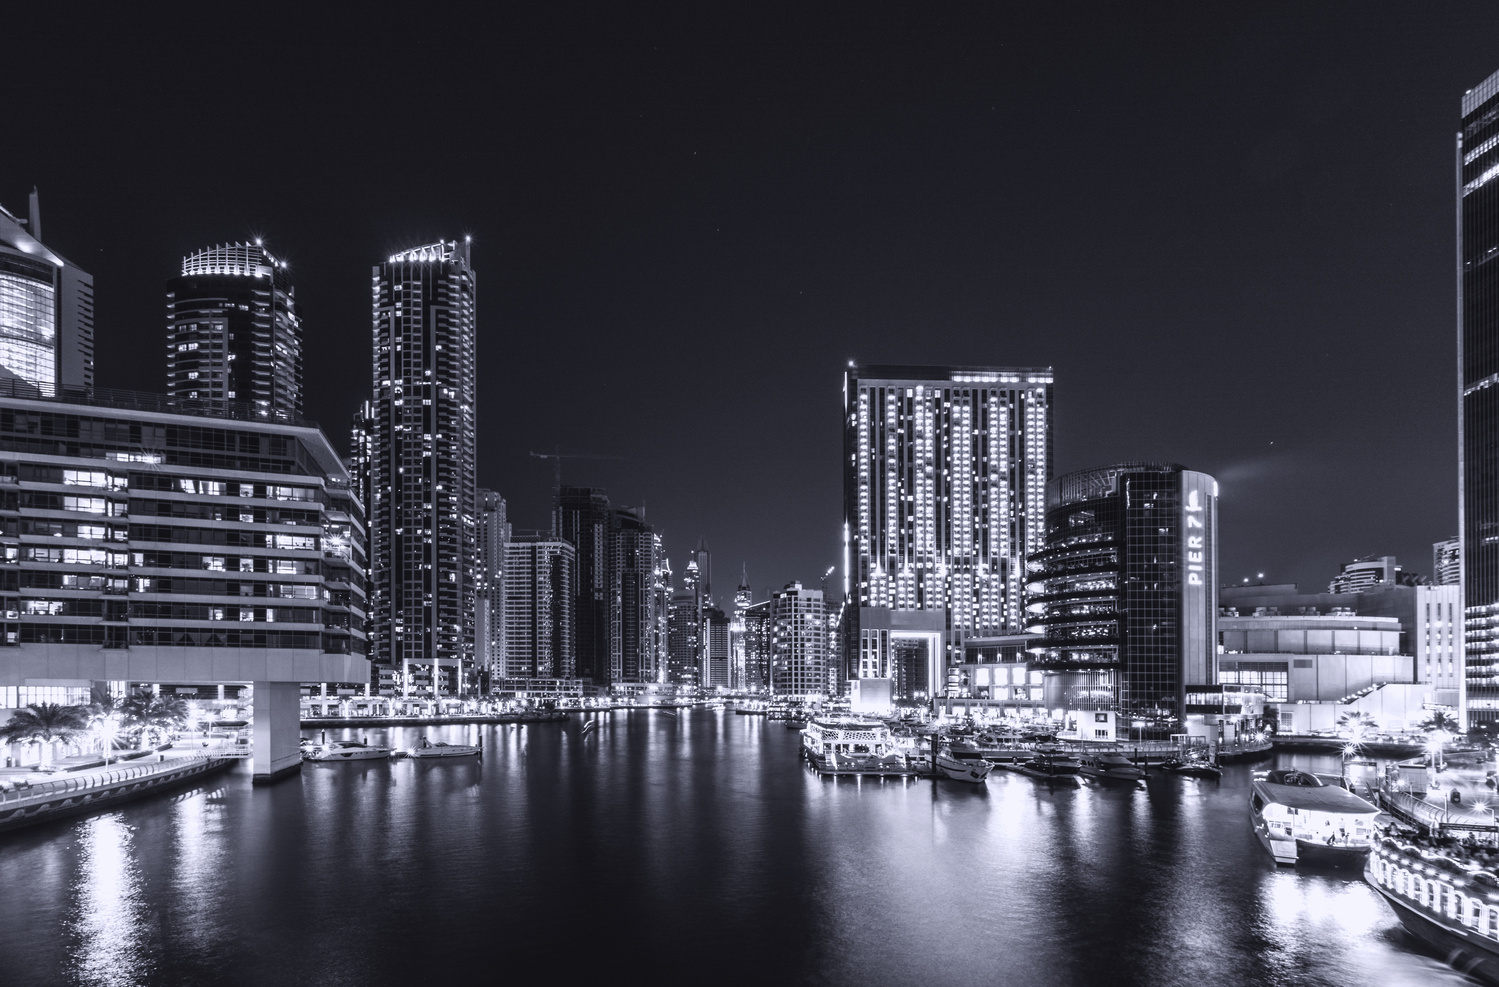 Dubai Marina at night in Blue 1 by David Evans